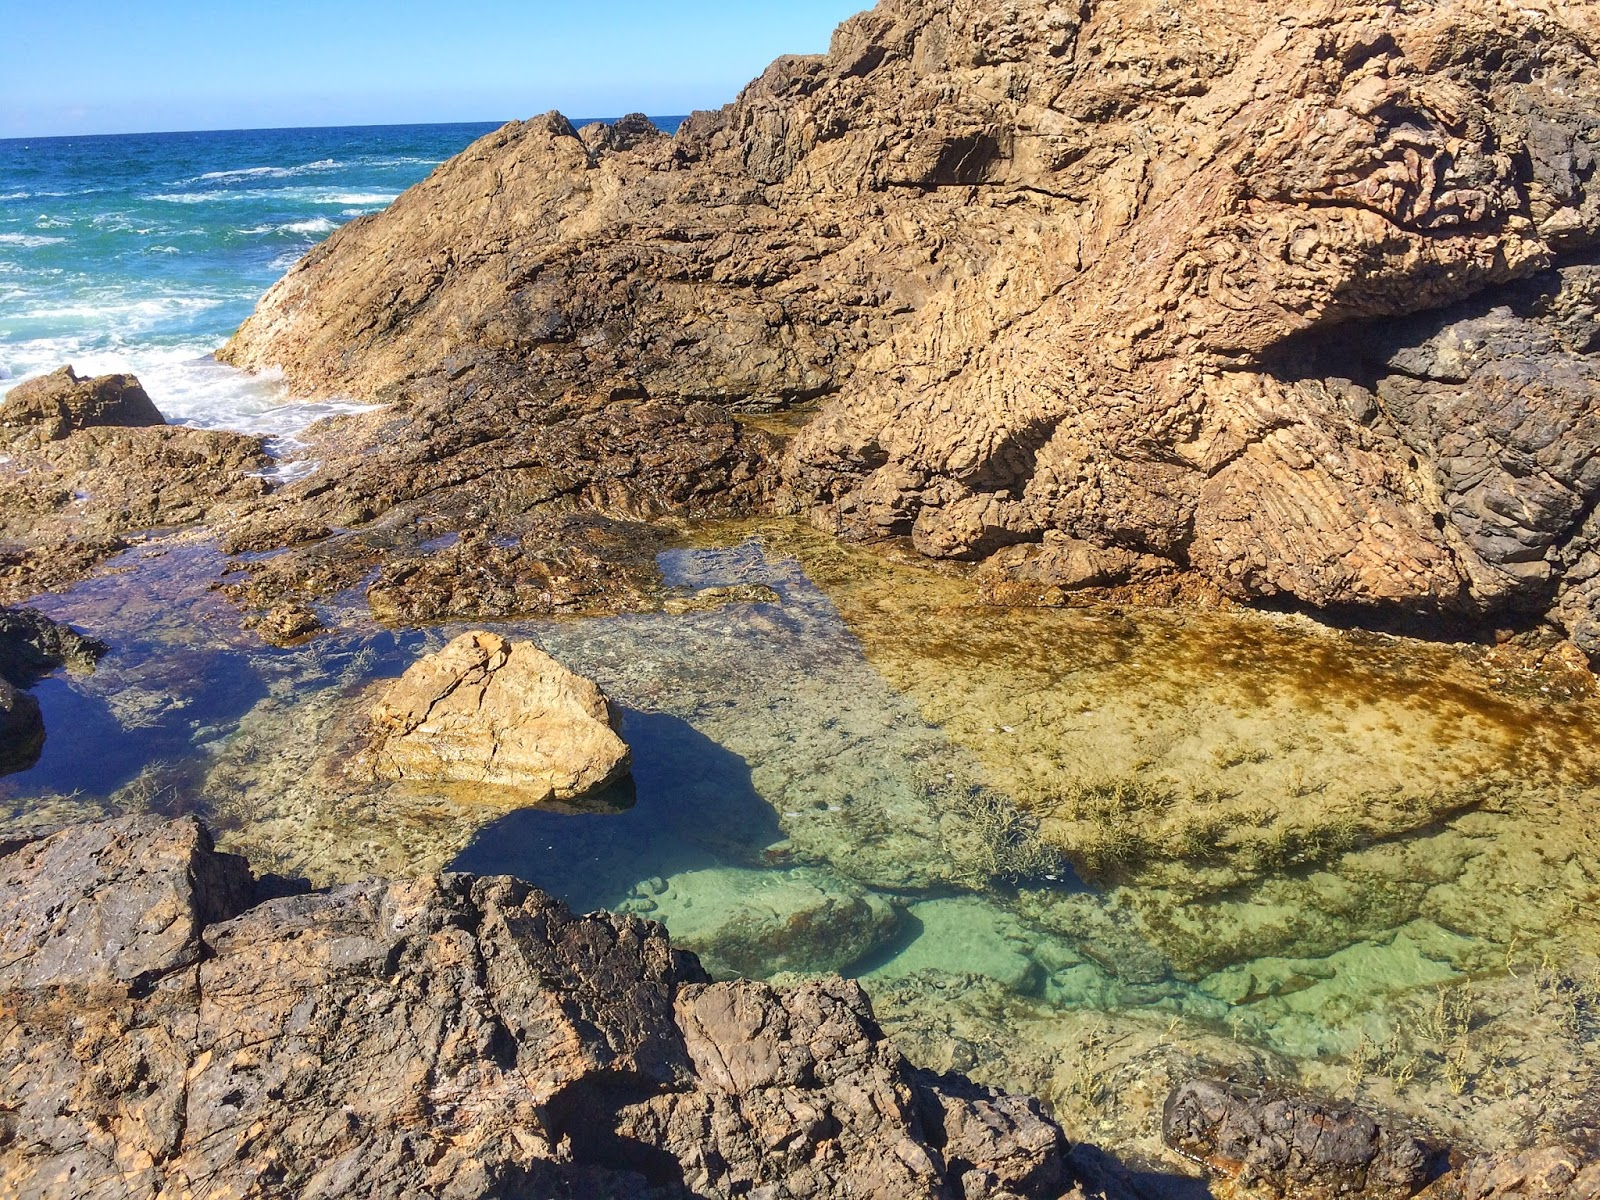 Rockpools at Little Bay Port Macquarie